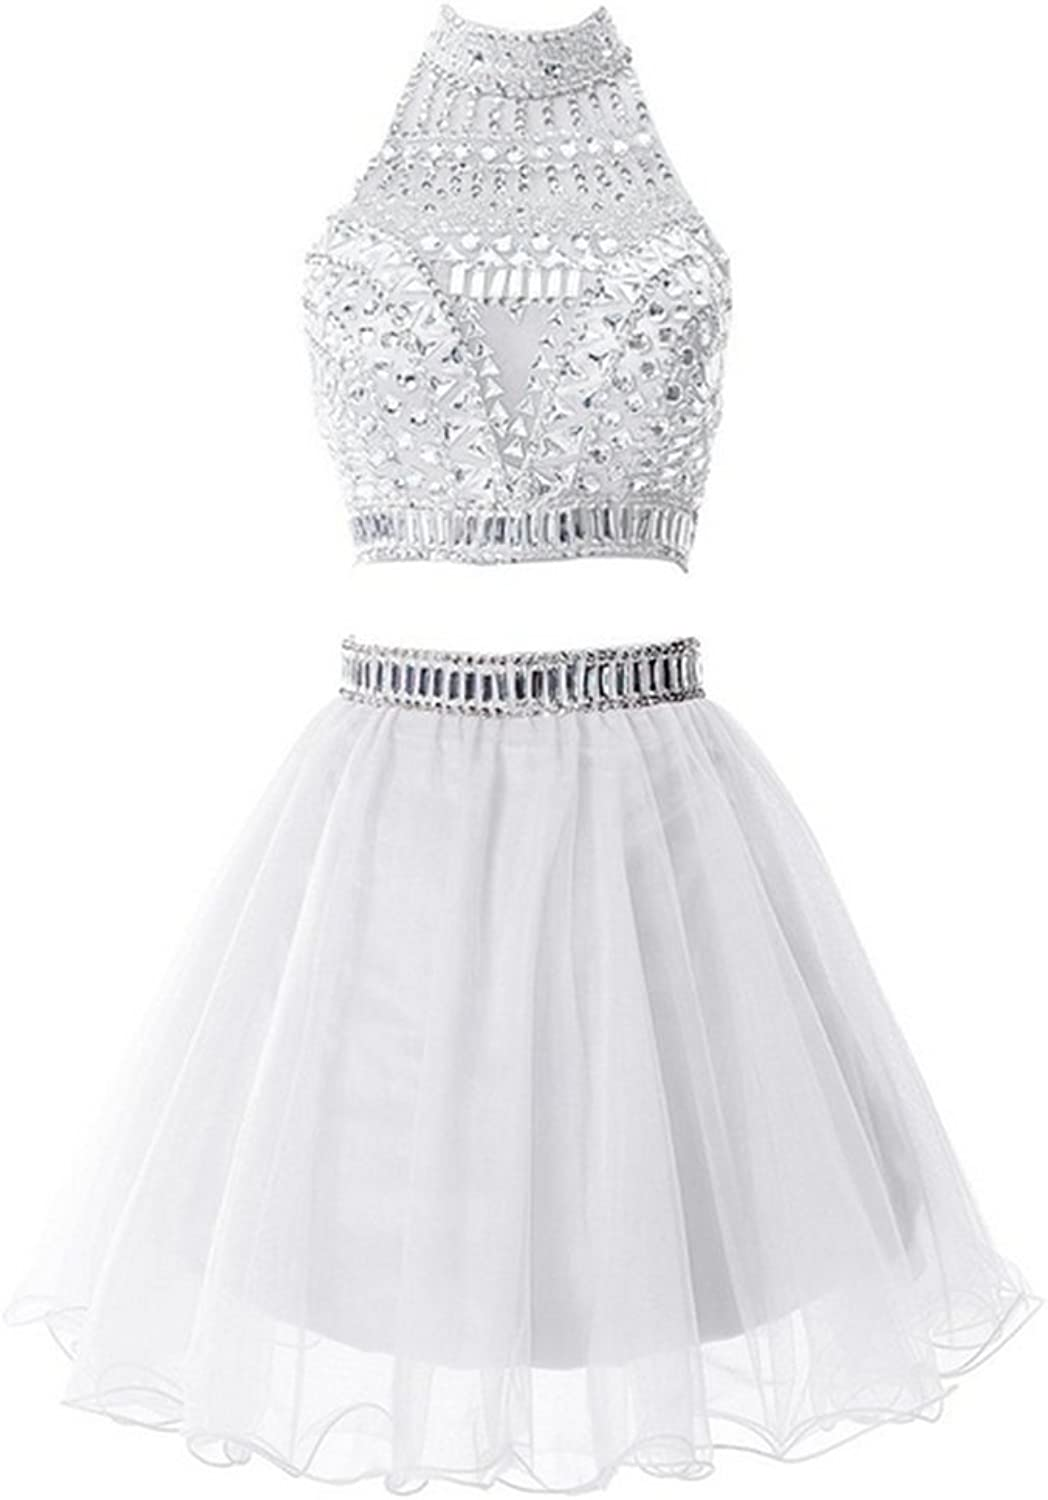 Emmani Women's Short Two Pieces Homecoming Dress Prom Dresses with Rhinestones